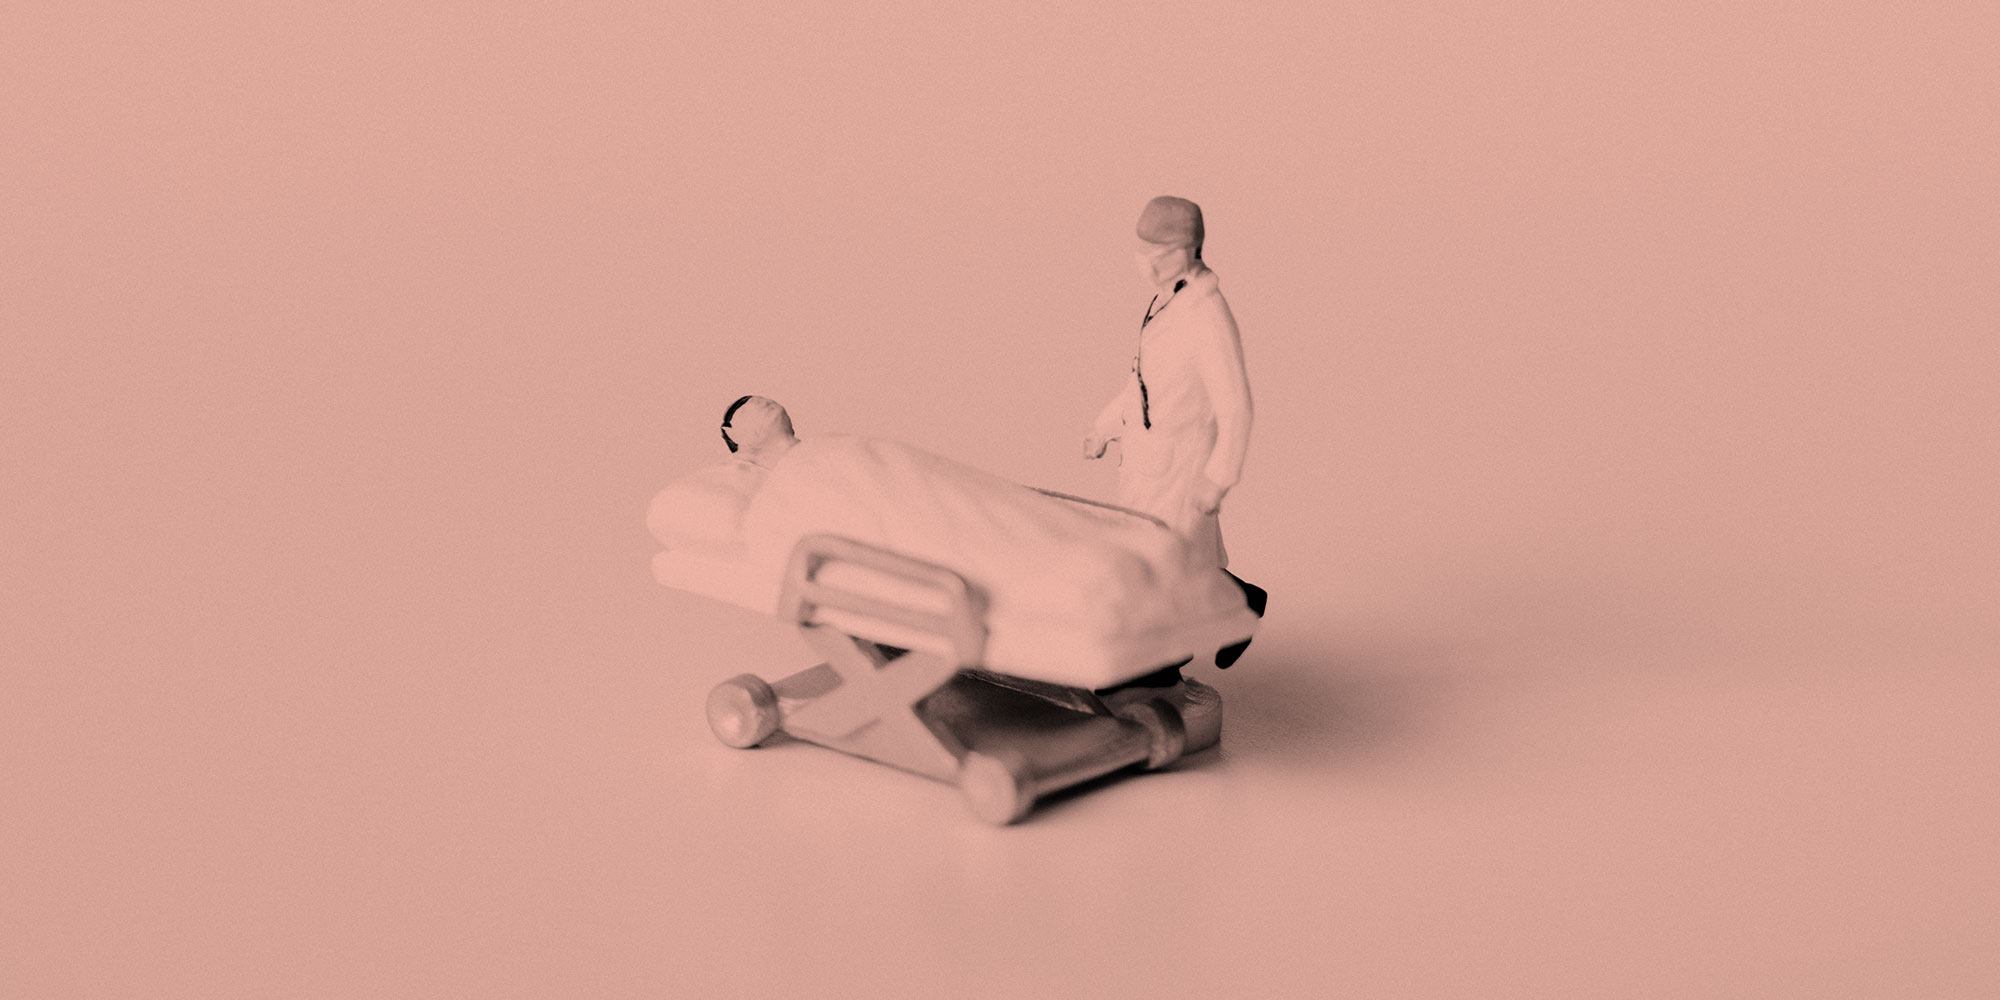 Figure of a doctor beside a patient in a hospital bed. Post-surgery medication and addiction recovery